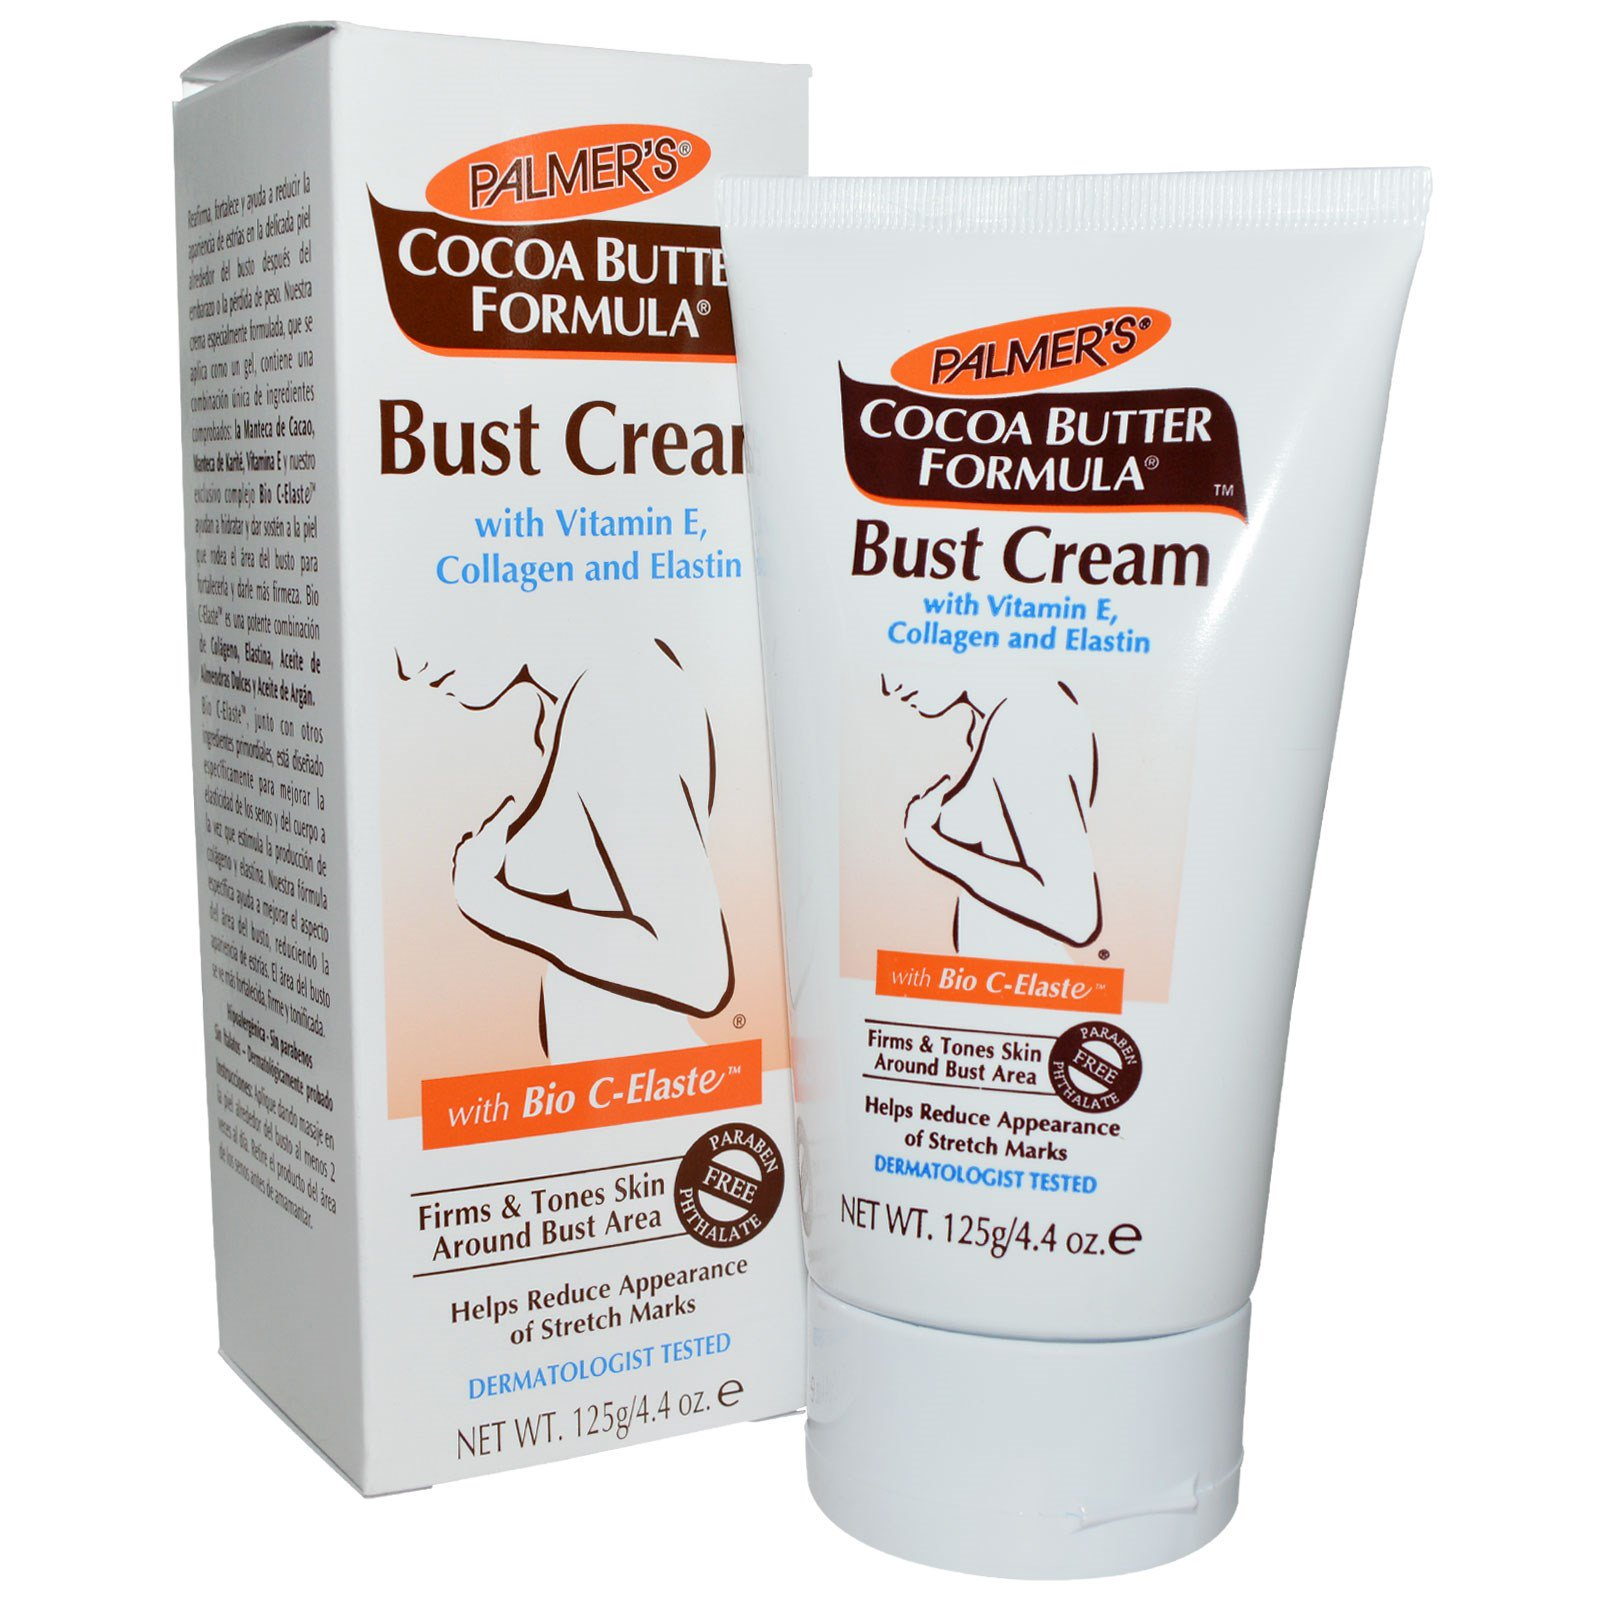 Palmer S Cocoa Butter Formula Bust Cream With Bio C